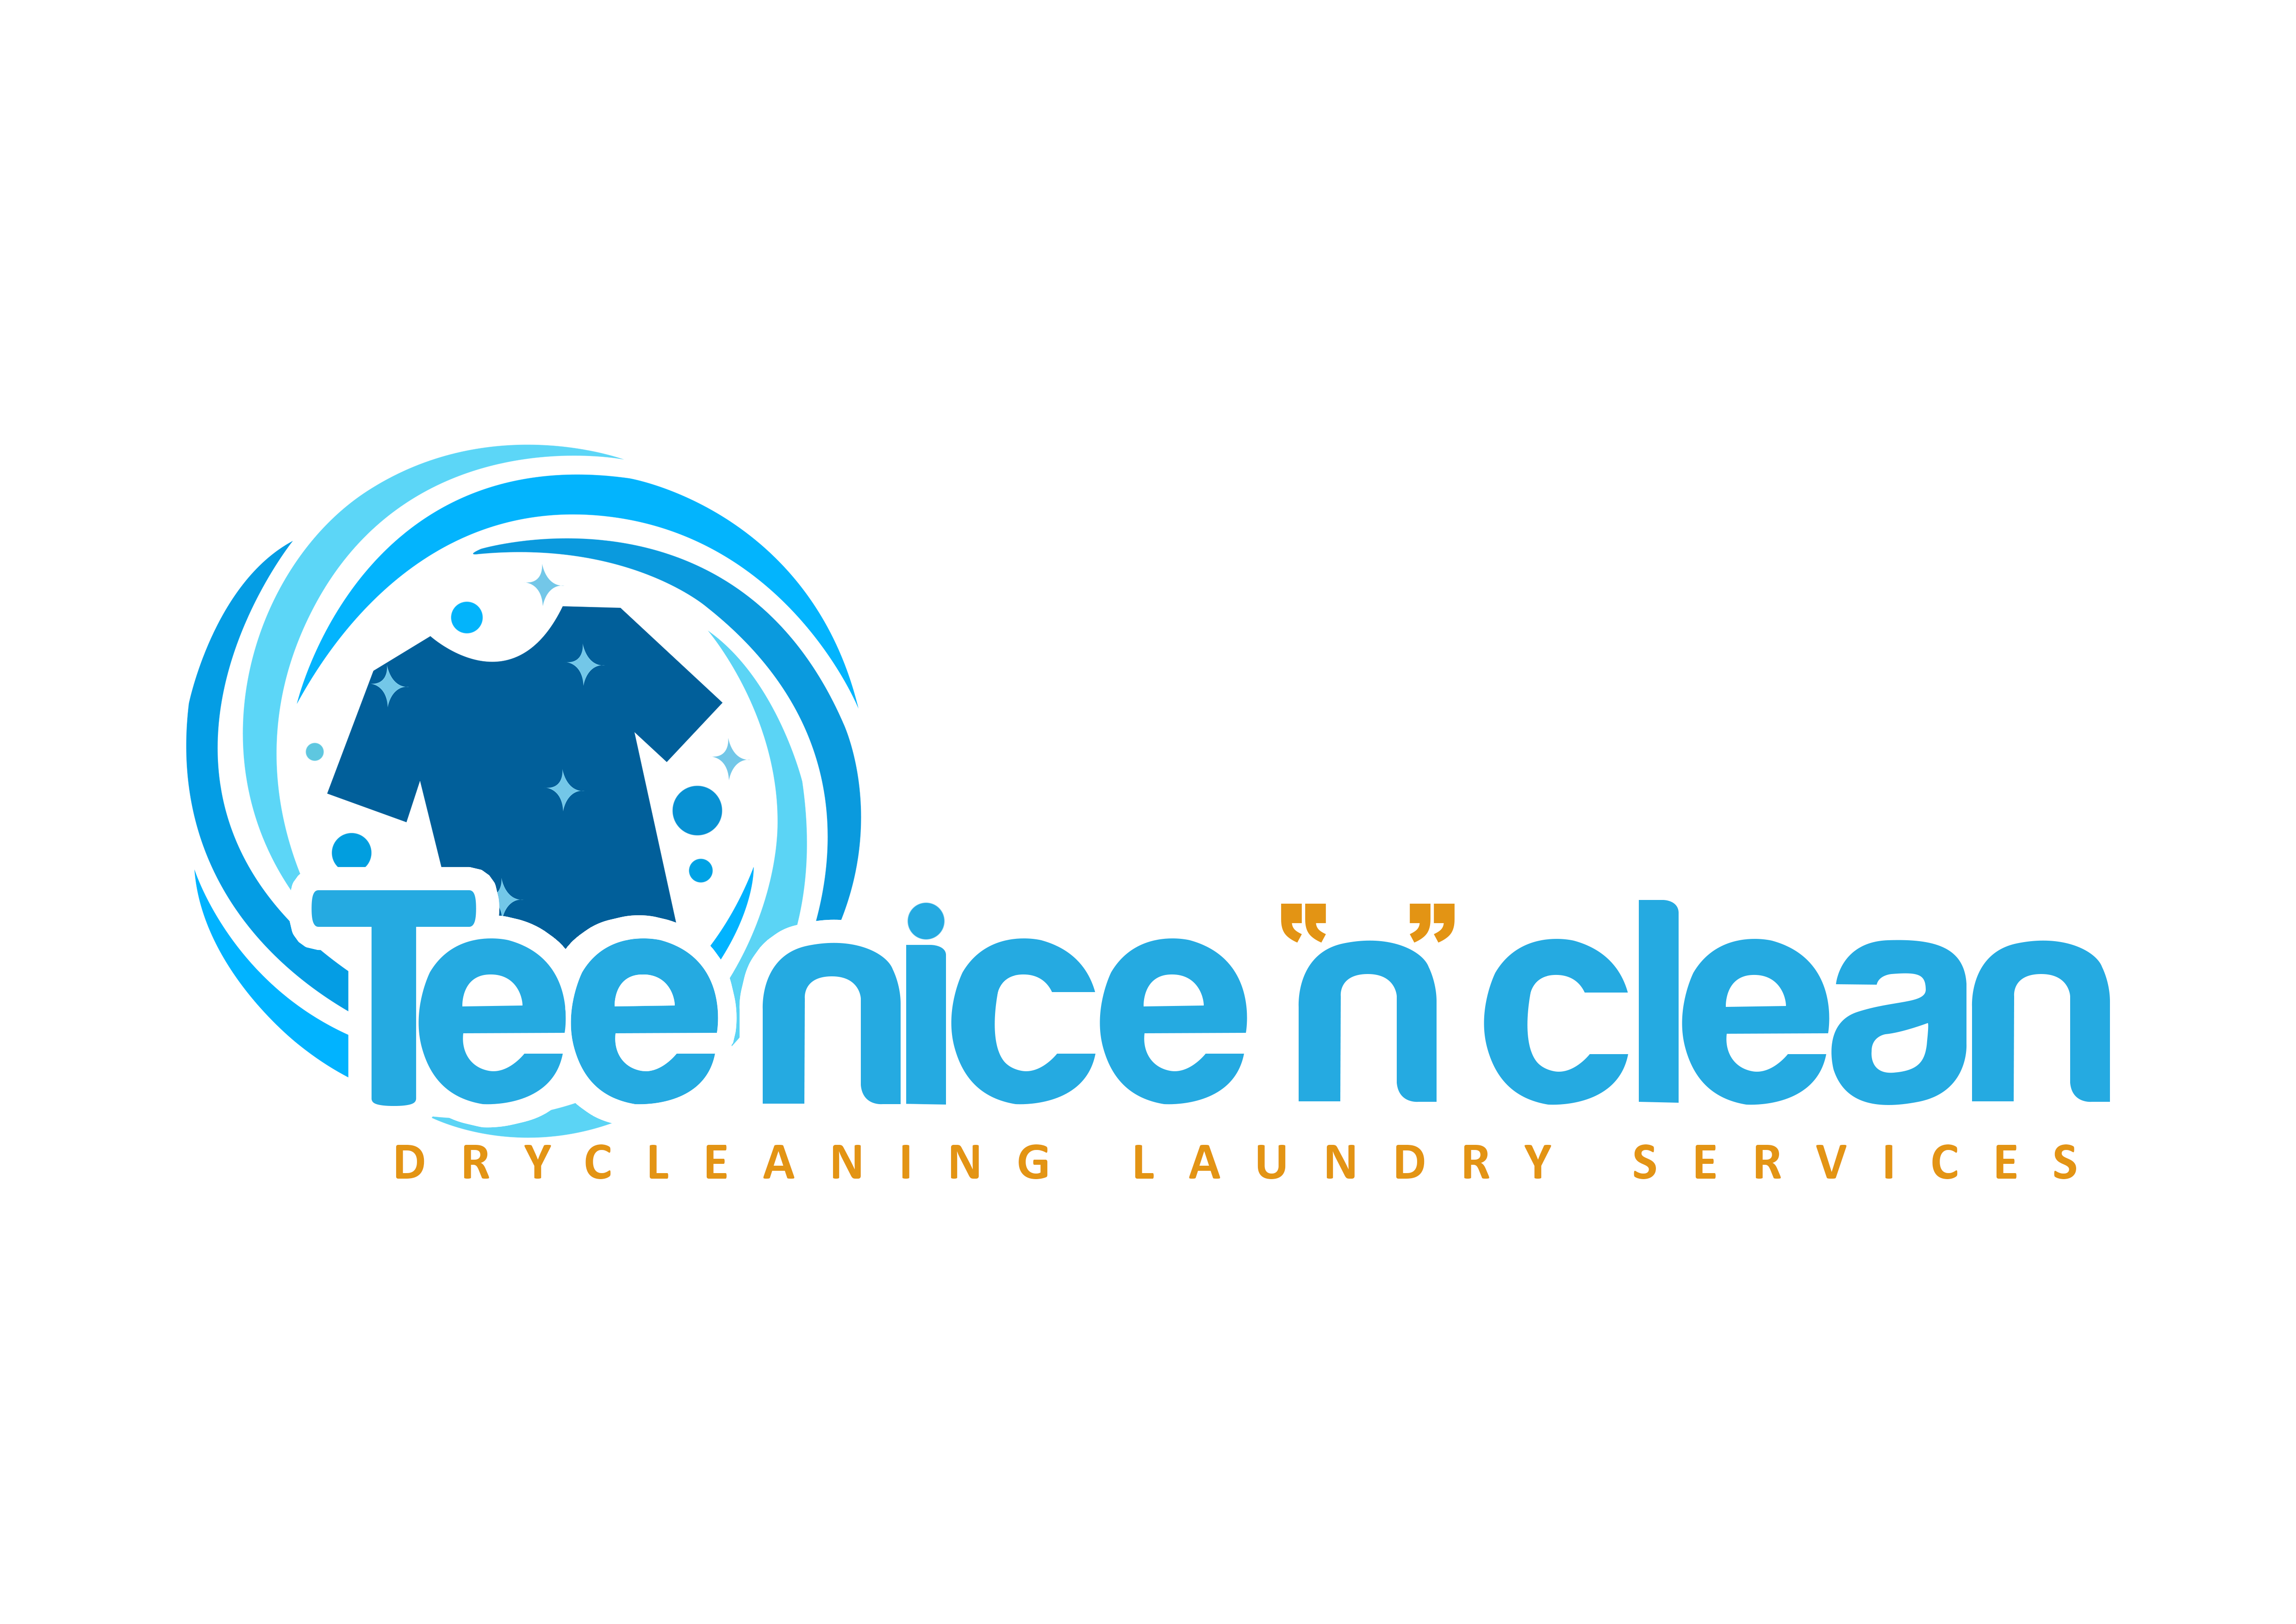 """TEE NICE """"N"""" CLEAN LAUNDRY SERVICES logo design (With"""